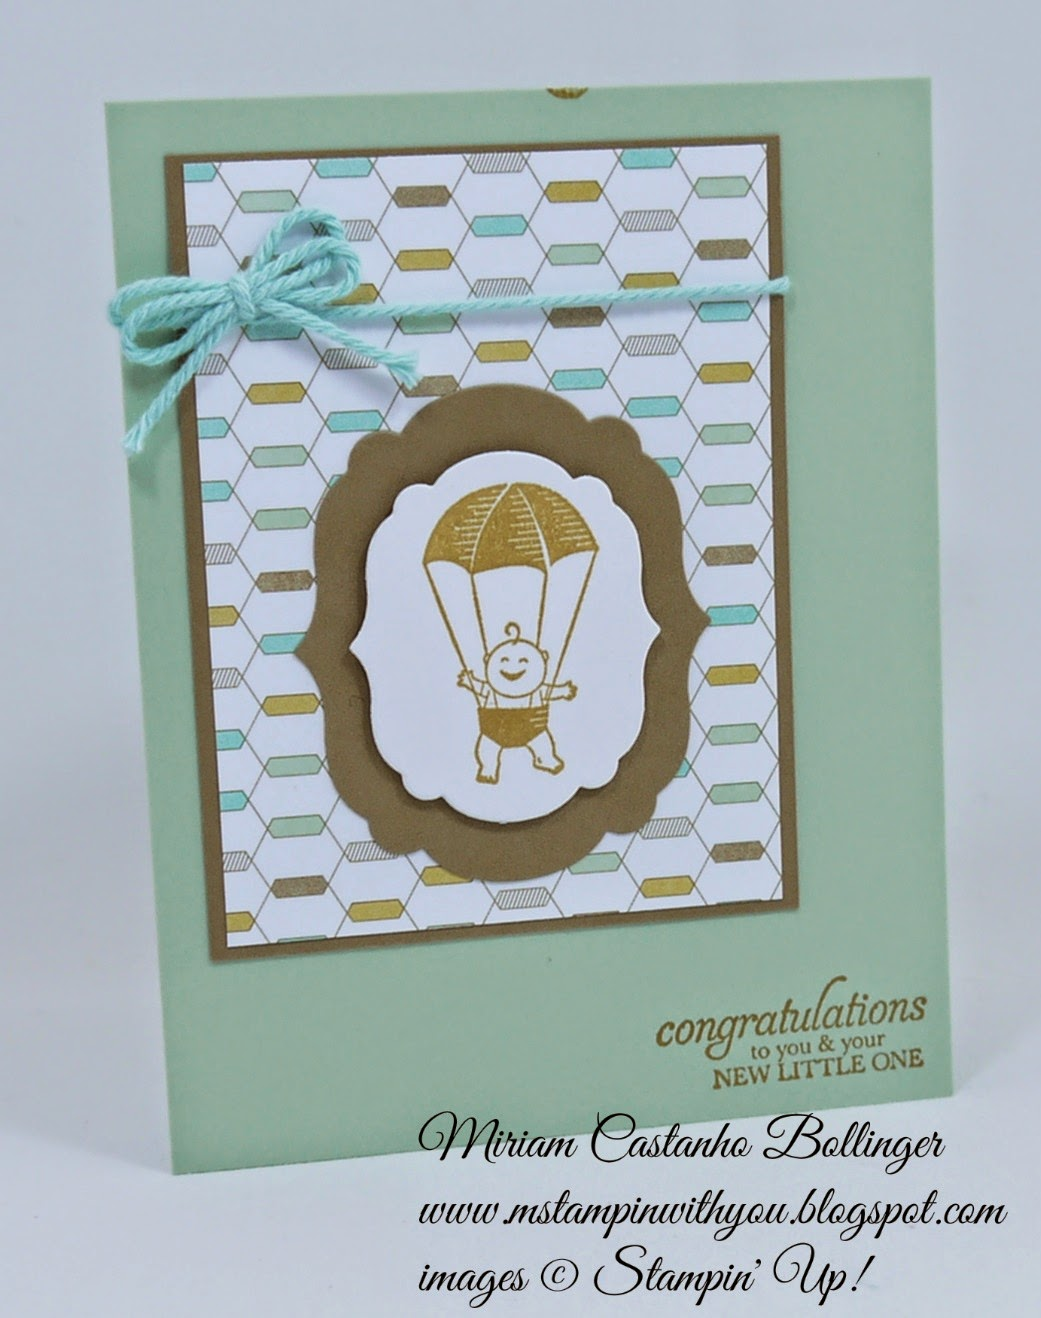 Miriam Castanho Bollinger, #mstampinwithyou, stampin up, demonstrator, cc, lullaby dsp, big shot, labels collection, baby card, sweetest gift, su